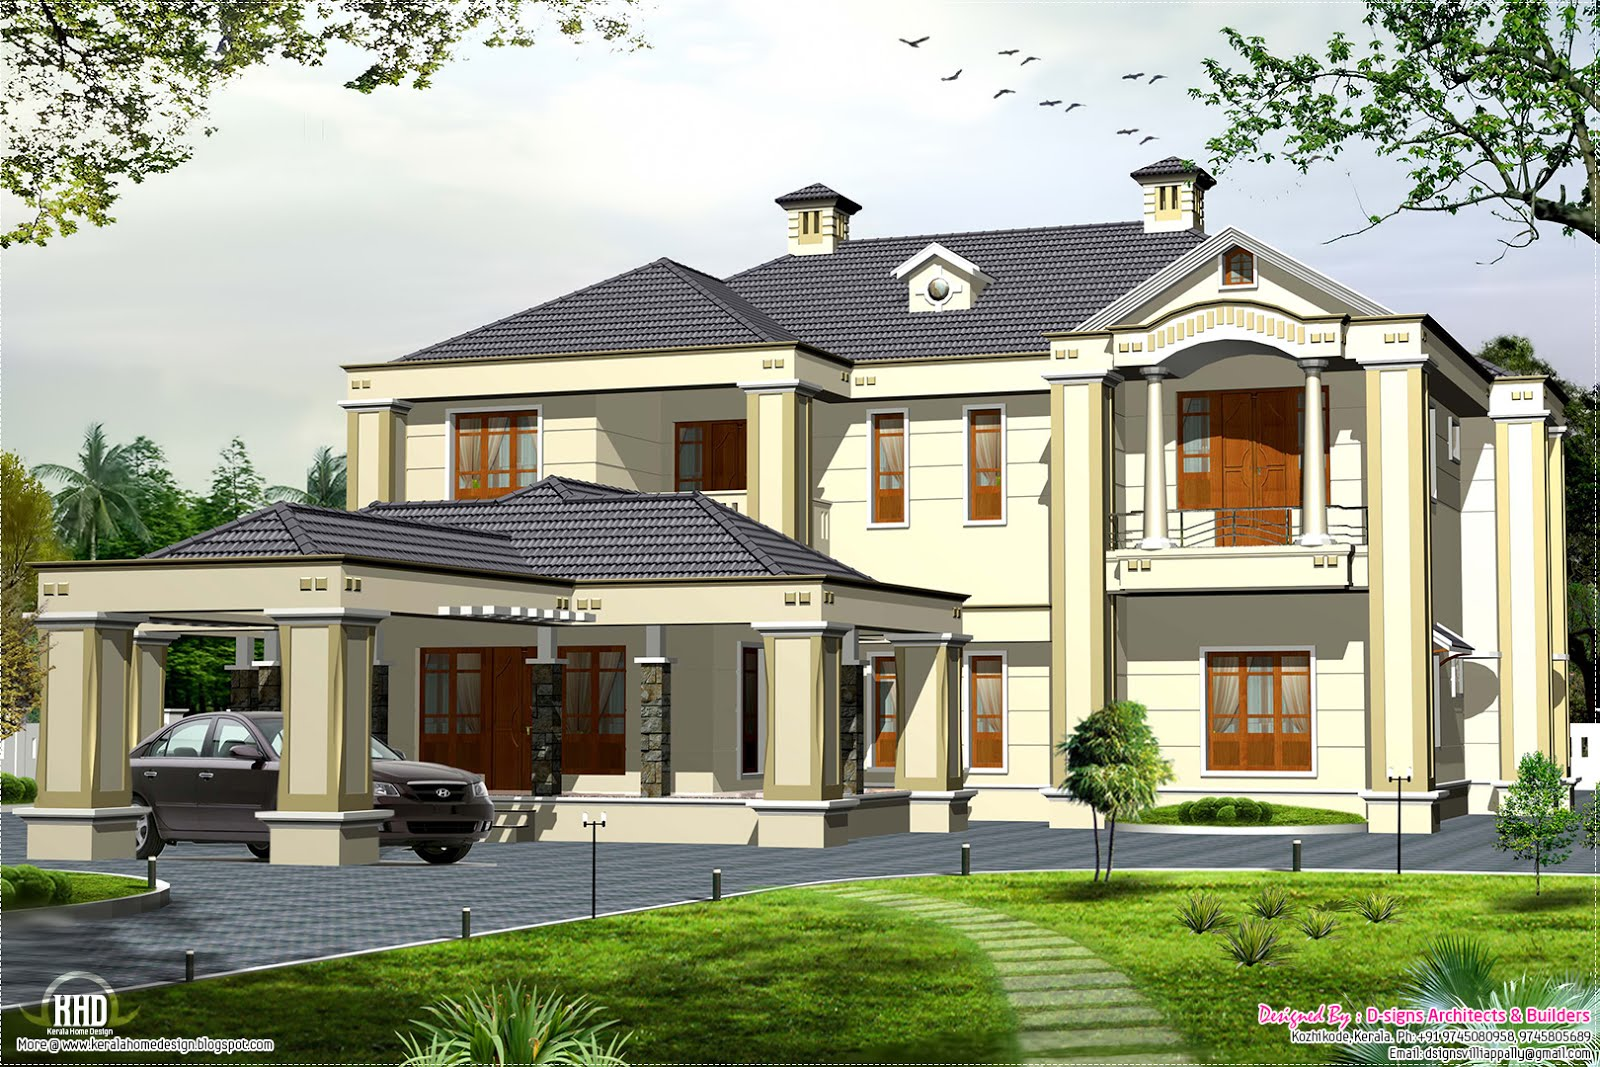 Colonial style 5 bedroom victorian style house enter for 5 bedroom house